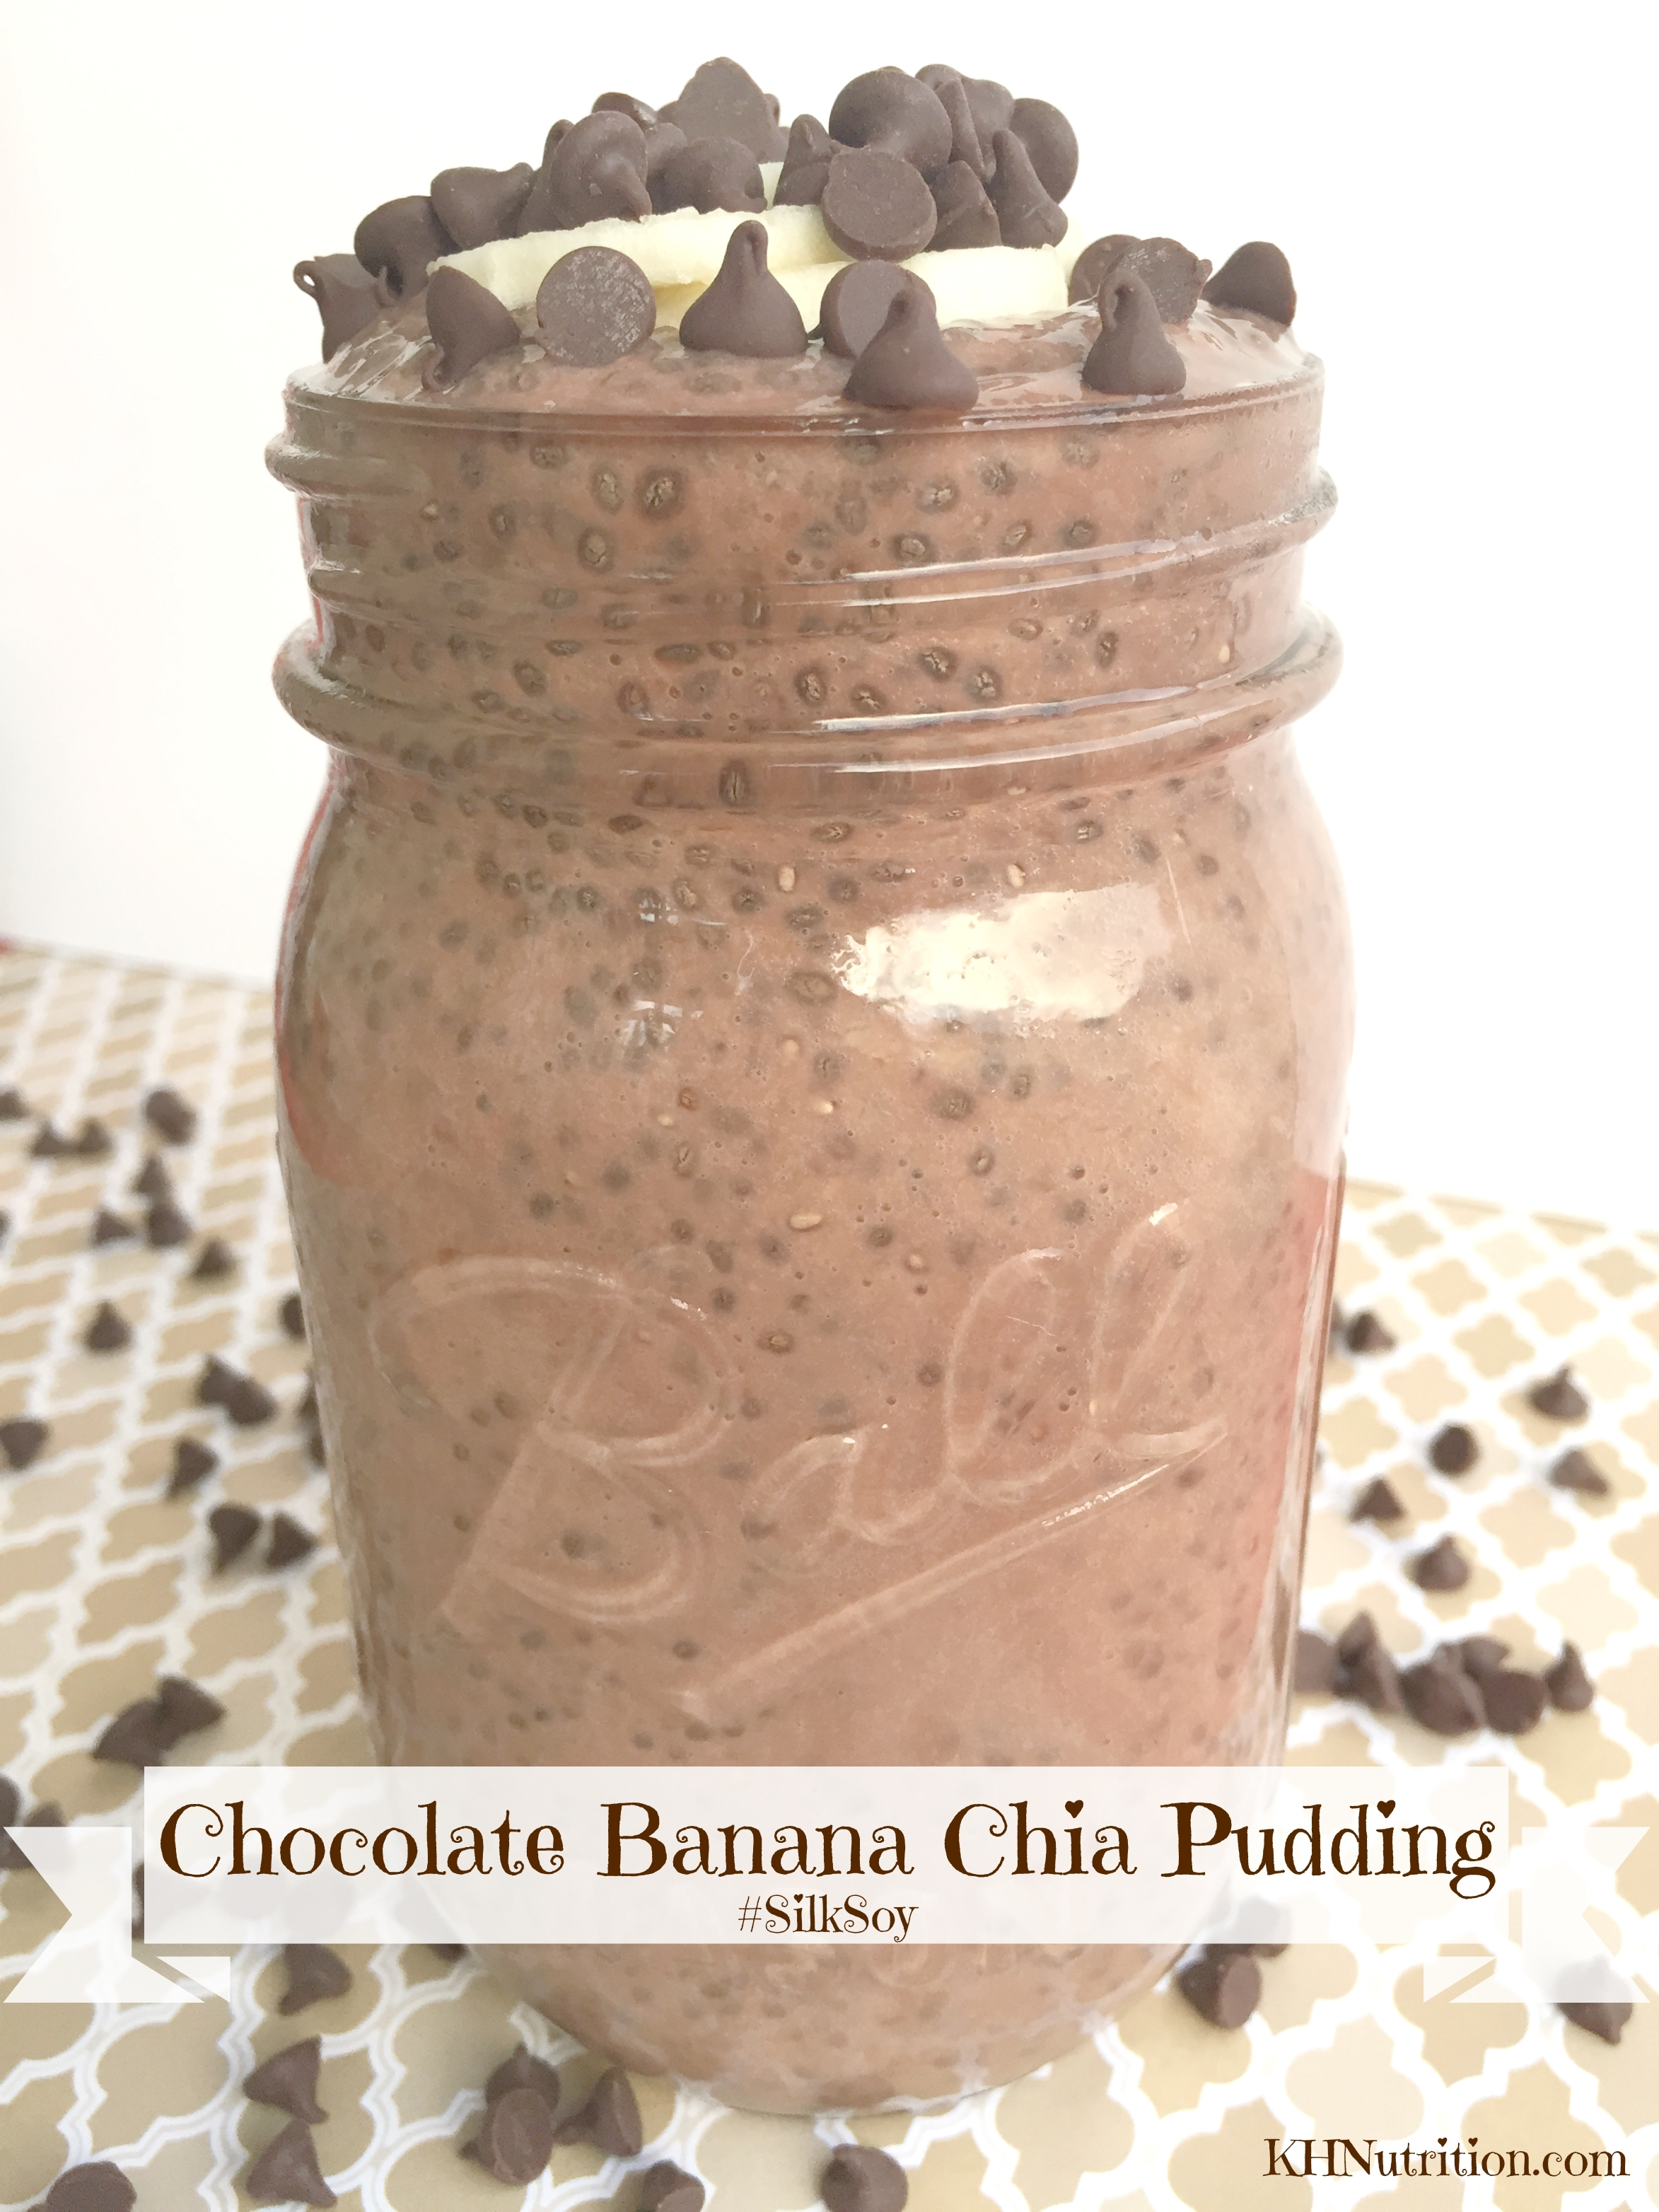 Chocolate Banana Chia Pudding with #SilkSoy! #fitfluential @LoveMySilk